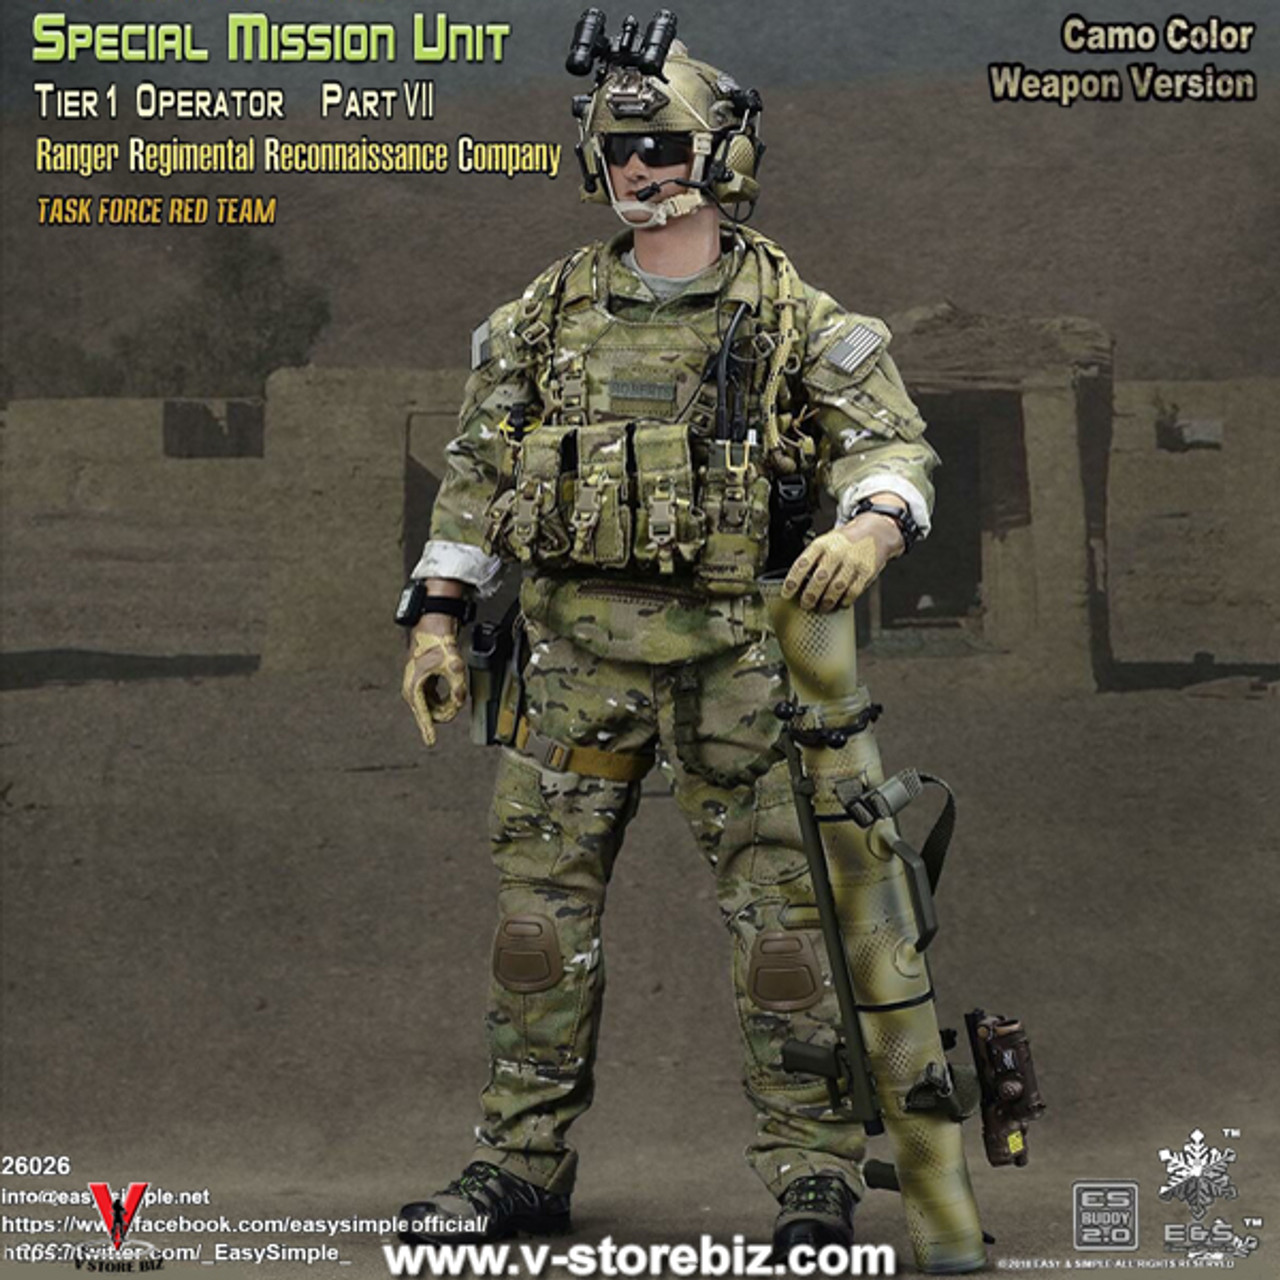 1//6 Scale Toy US Ranger RRRC Male Base Body w//Head Sculpt